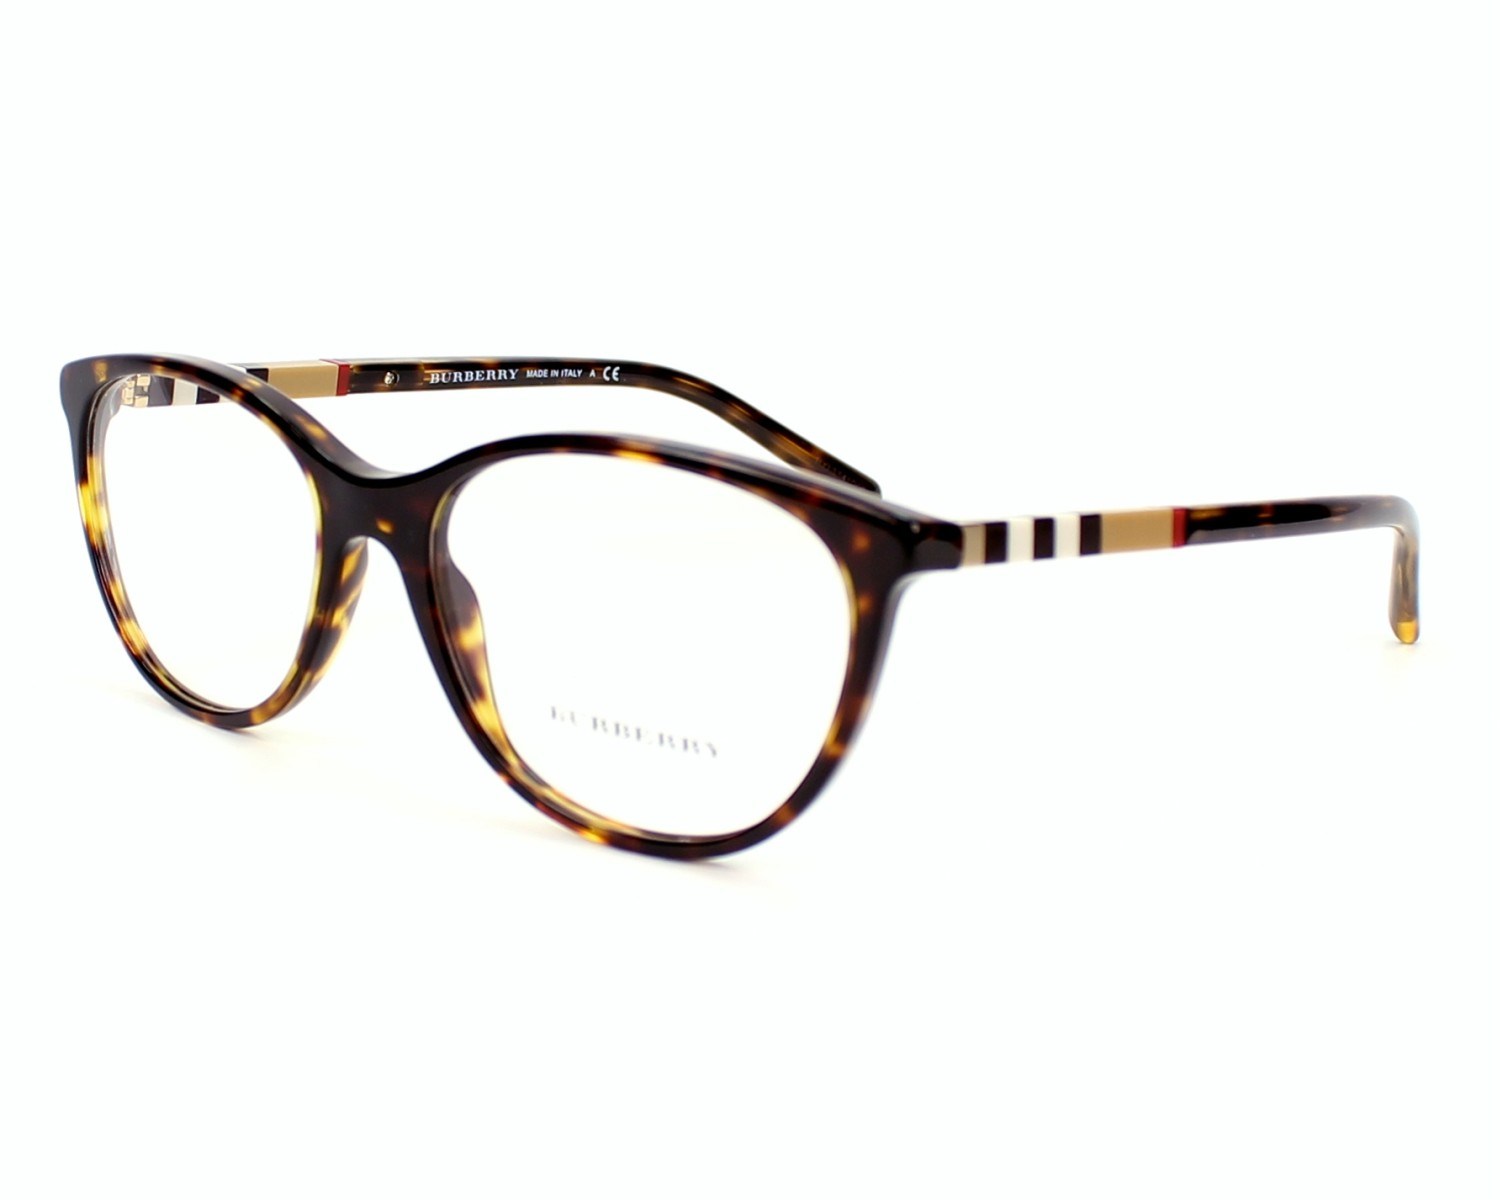 Burberry Red Eyeglass Frames : Order your Burberry eyeglasses BE2205 3002 54 today